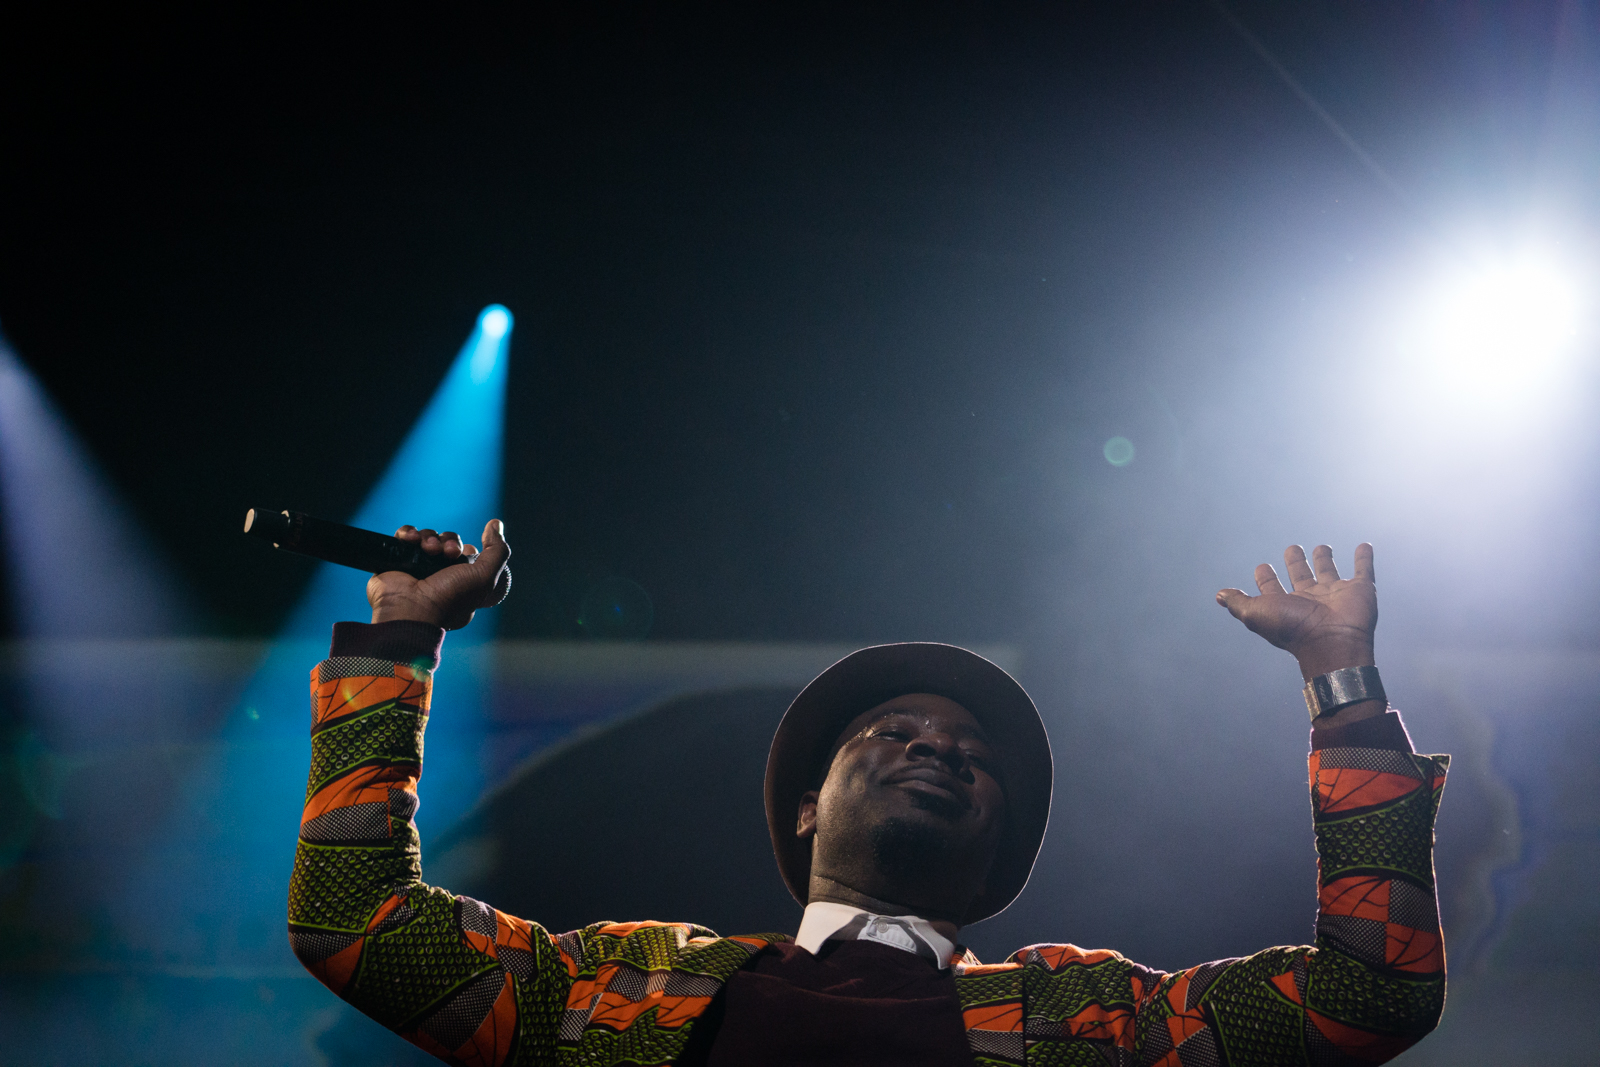 Blitz the Ambassador performs at TED2016 - Dream, February 15-19, 2016, Vancouver Convention Center, Vancouver, Canada. Photo: Bret Hartman / TED